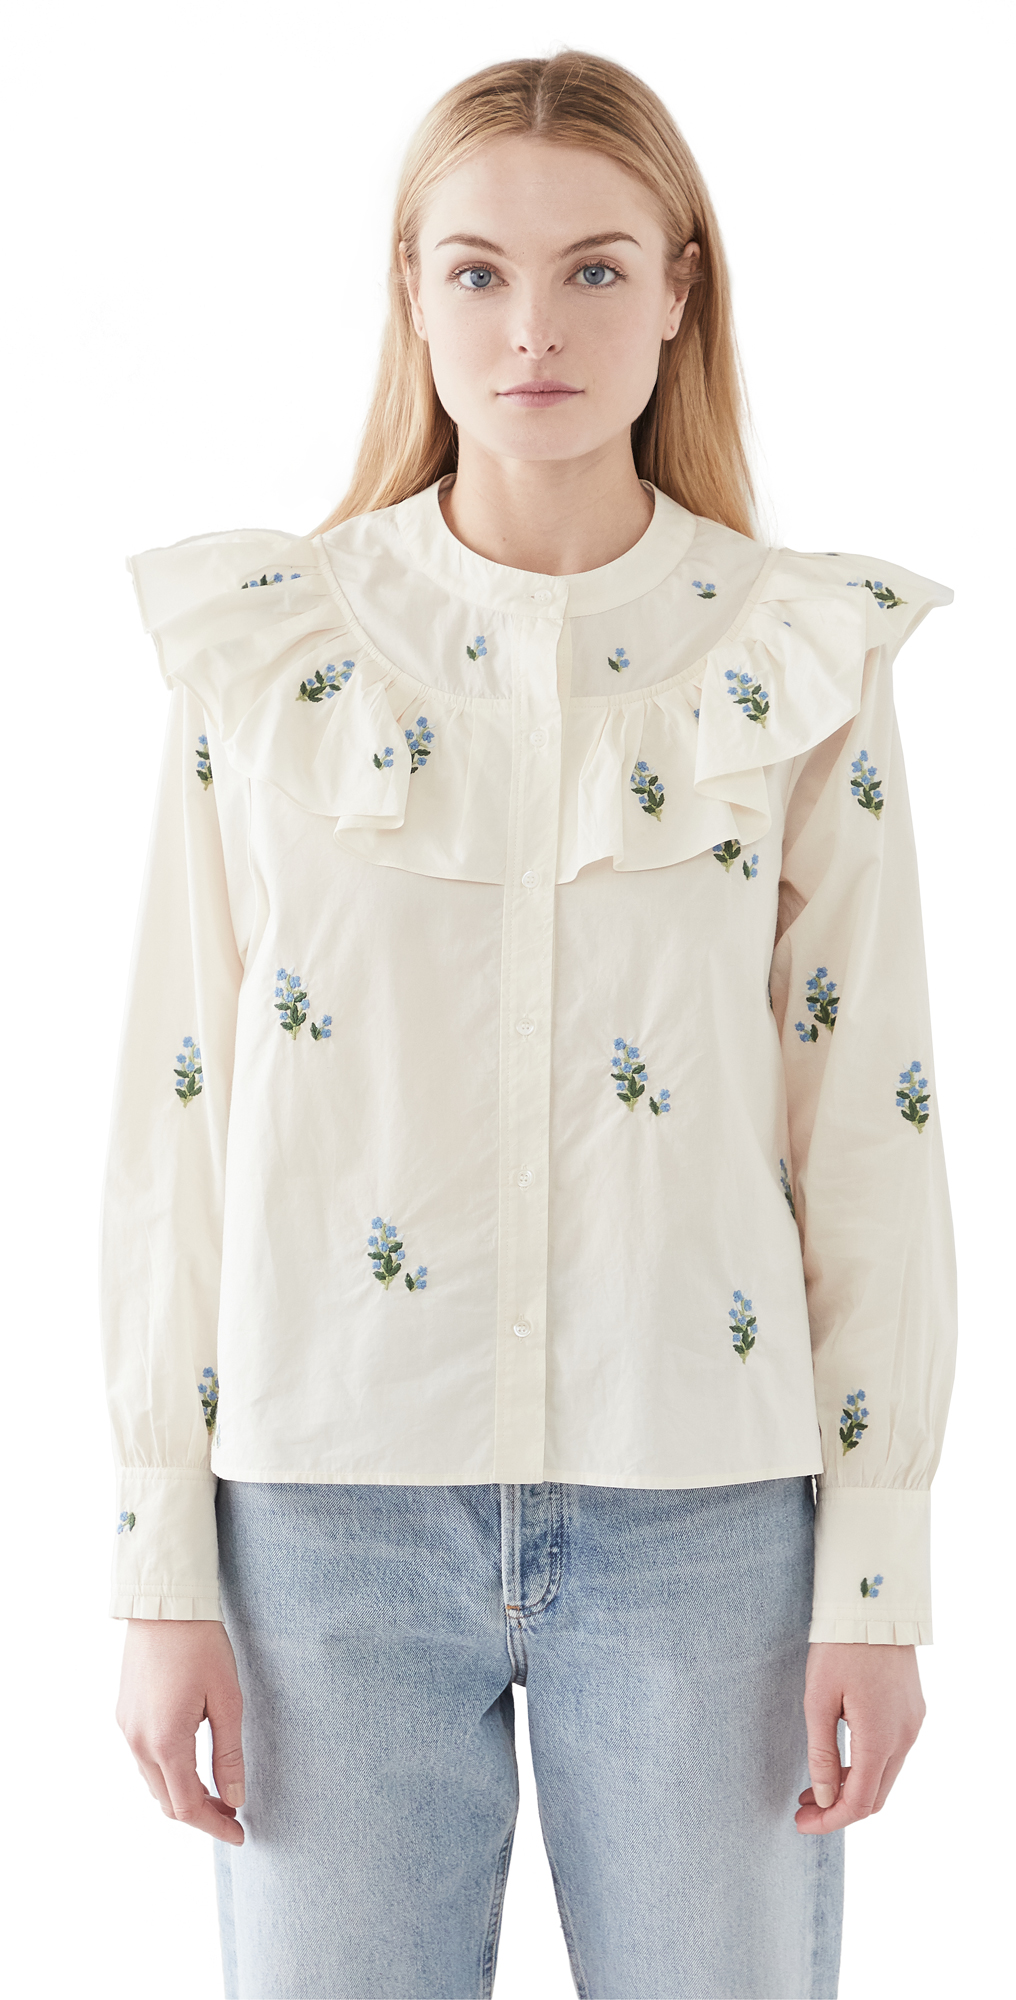 Citizens of Humanity Evie Embroirdered Blouse